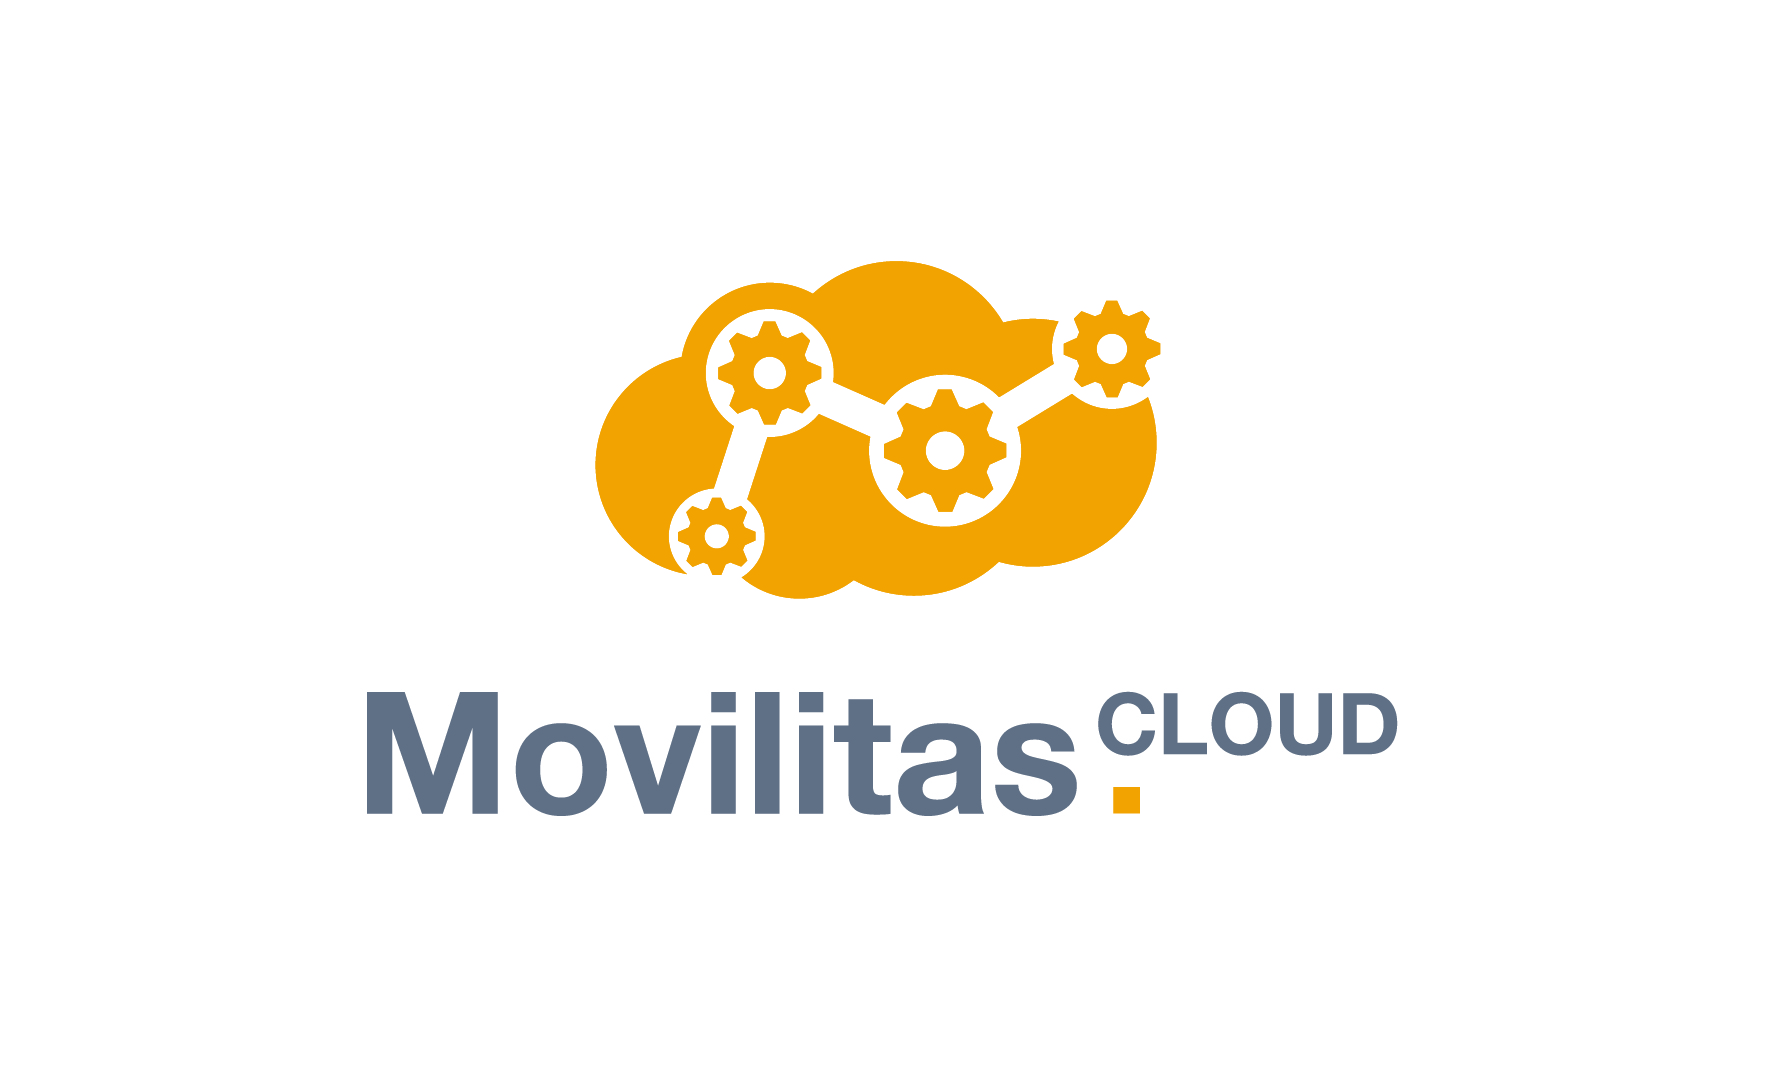 mov-logo-movilitascloud-01